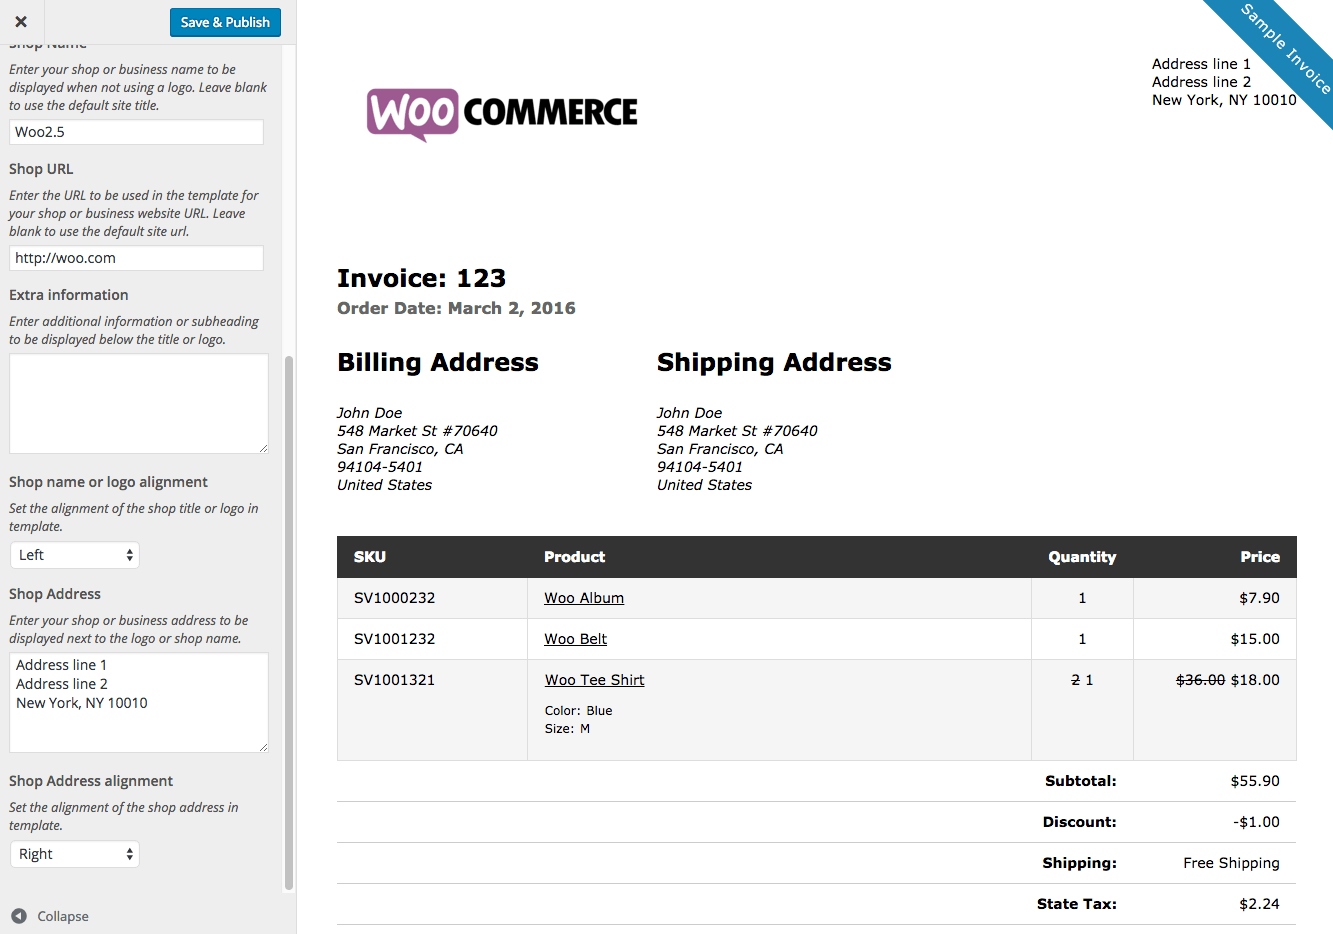 Darkfaderus  Mesmerizing Woocommerce Print Invoices Amp Packing Lists  Woocommerce Docs With Foxy Woocommerce Print Invoices  Packing Lists Customizer With Divine Sales Invoice Terms And Conditions Also Sample Invoices In Excel In Addition Invoicing Solution And Please Find Attached Invoice For Your As Well As Export Proforma Invoice Sample Additionally Close Invoice From Docswoocommercecom With Darkfaderus  Foxy Woocommerce Print Invoices Amp Packing Lists  Woocommerce Docs With Divine Woocommerce Print Invoices  Packing Lists Customizer And Mesmerizing Sales Invoice Terms And Conditions Also Sample Invoices In Excel In Addition Invoicing Solution From Docswoocommercecom